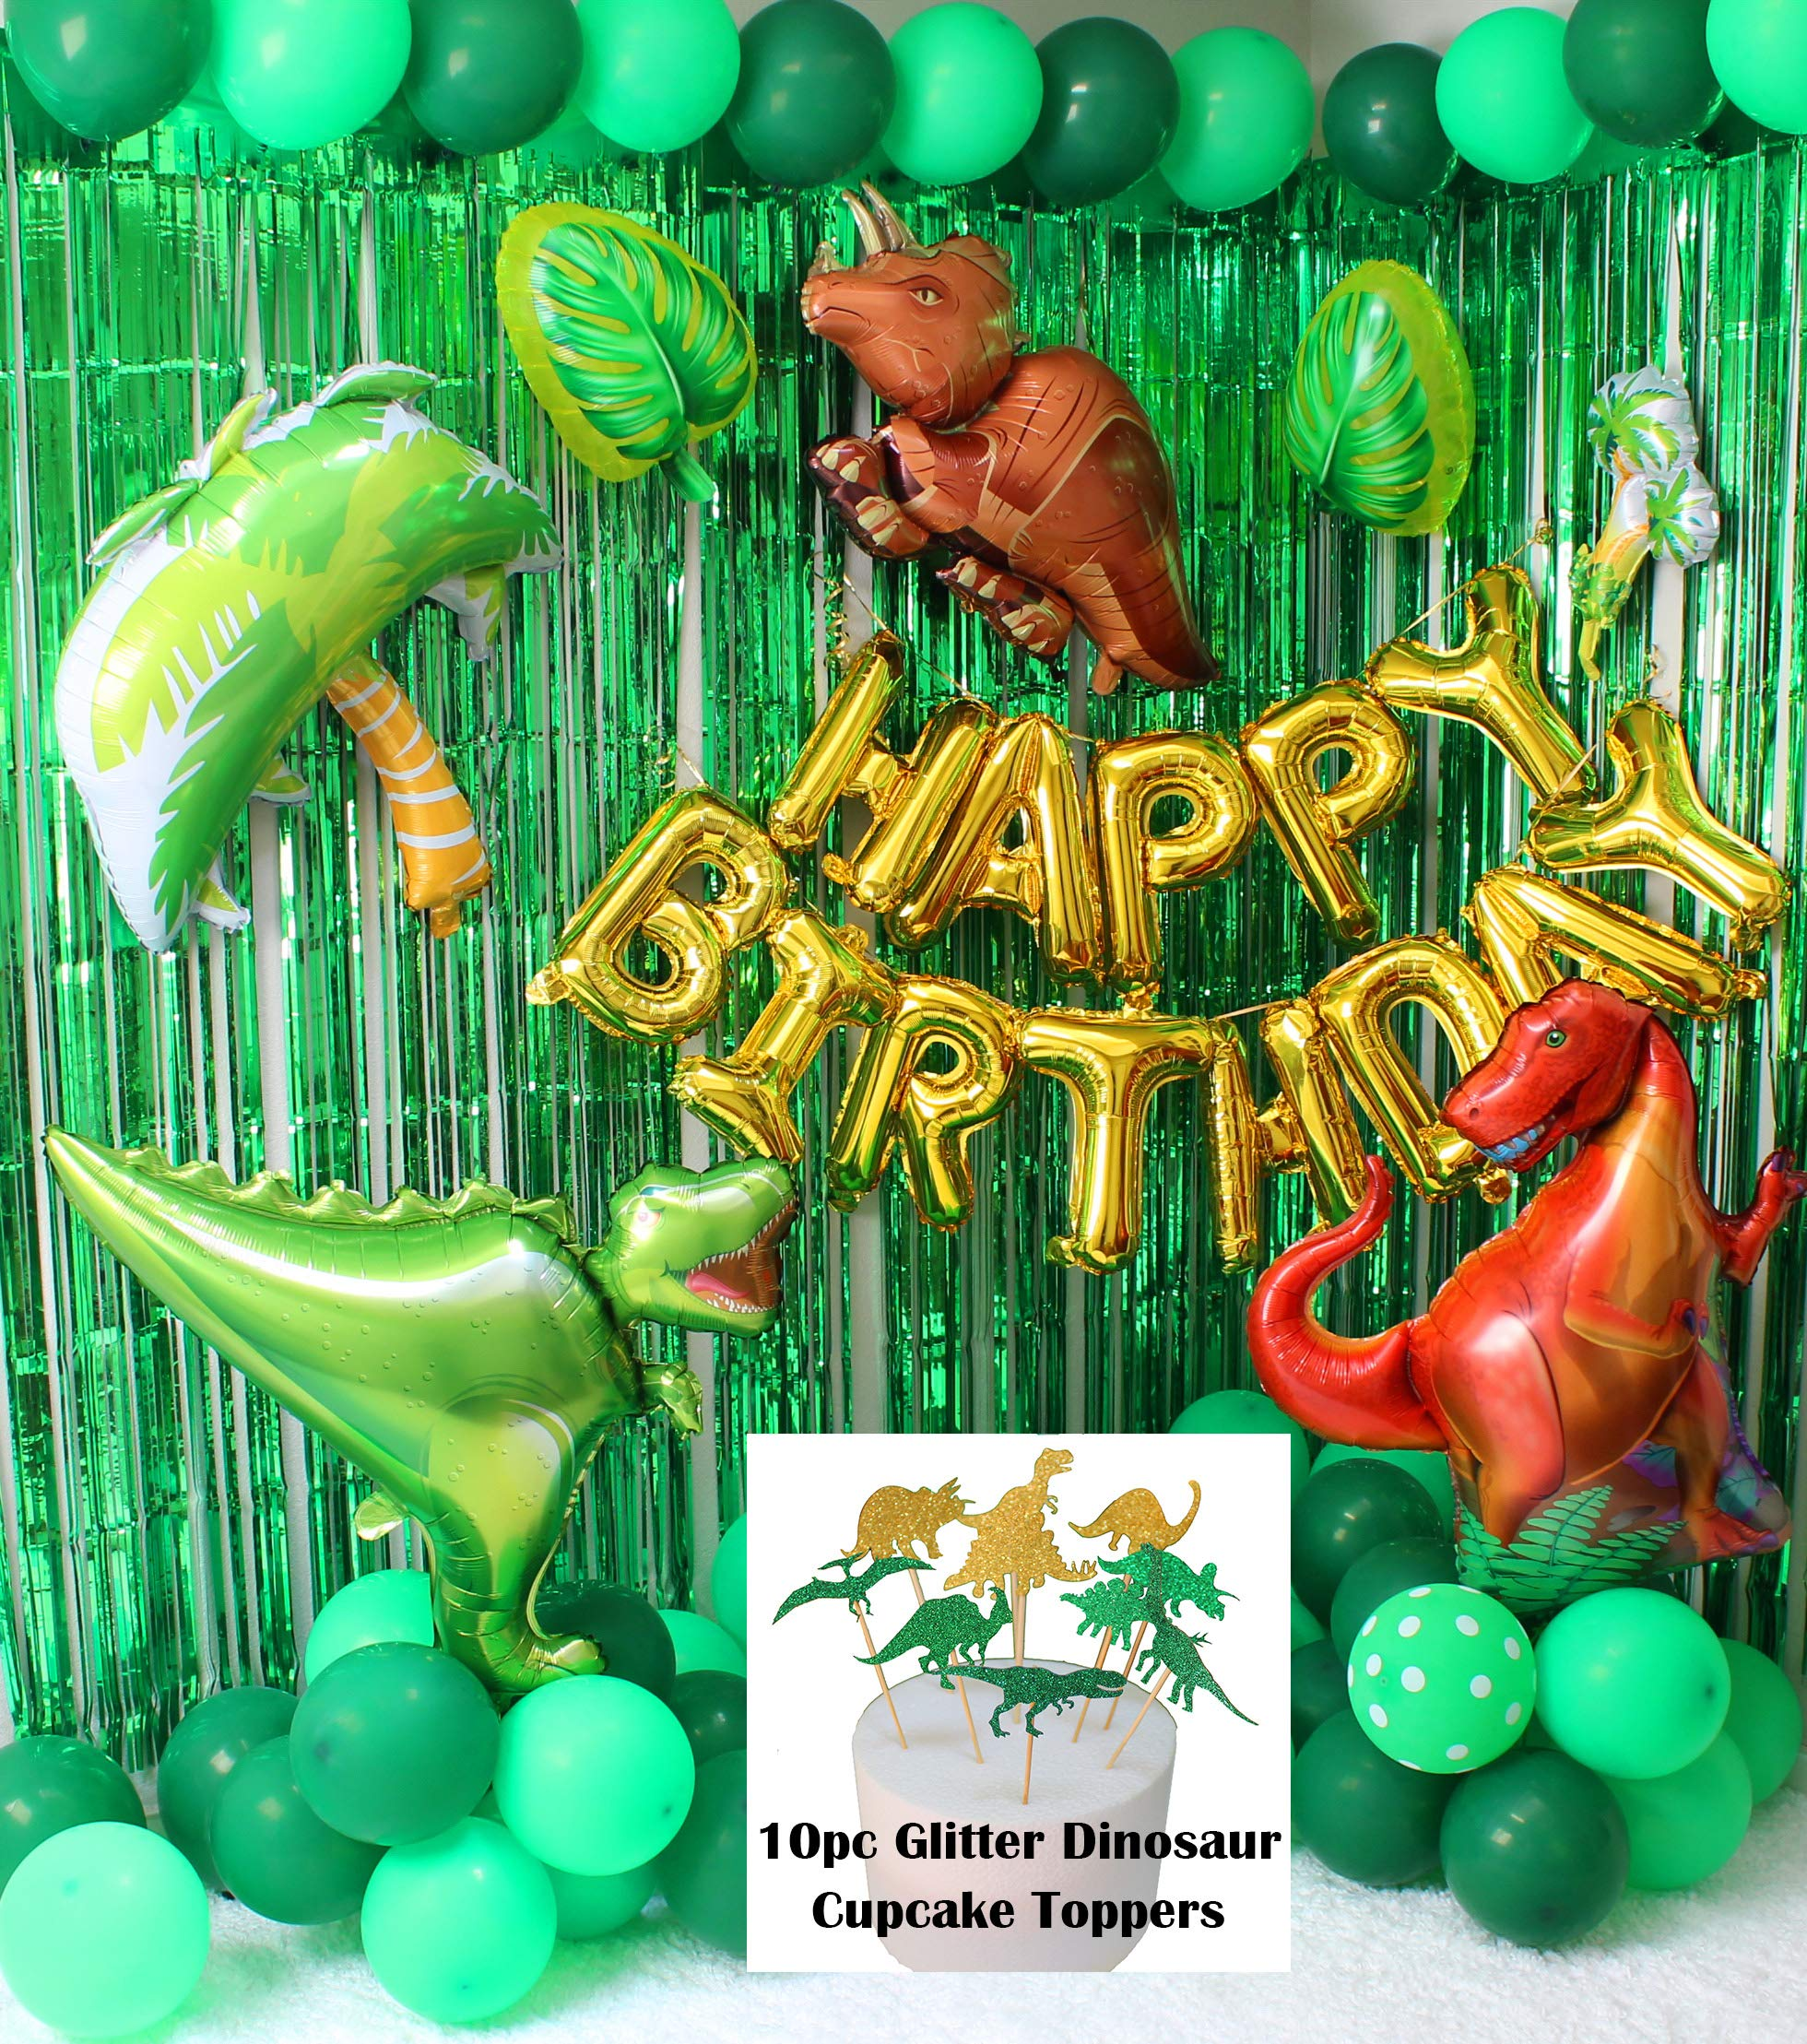 98 PCS Dinosaur Little Dino Party Supplies Decoration for Kids Boys Birthday Jurassic World Park Jungle Theme Backrop Cupcake Toppers Balloons by TaTaDirect